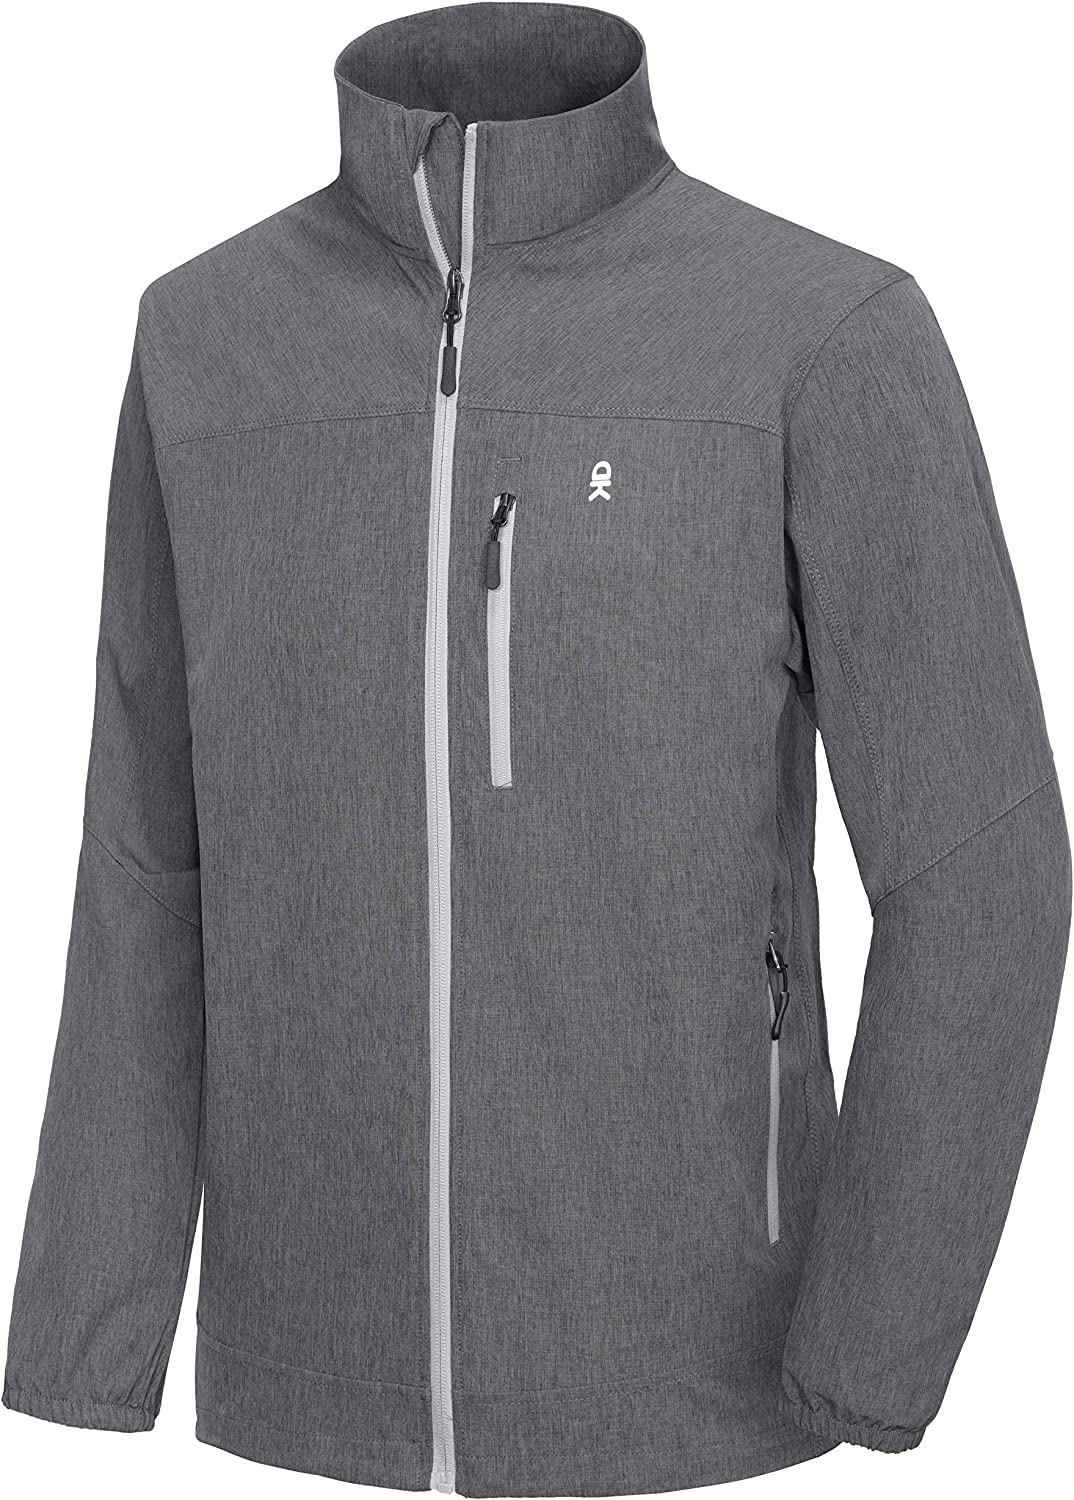 Little Donkey Andy Men's Lightweight Windbreaker, Softshell Jacket with Hood for Running Travel Hiking